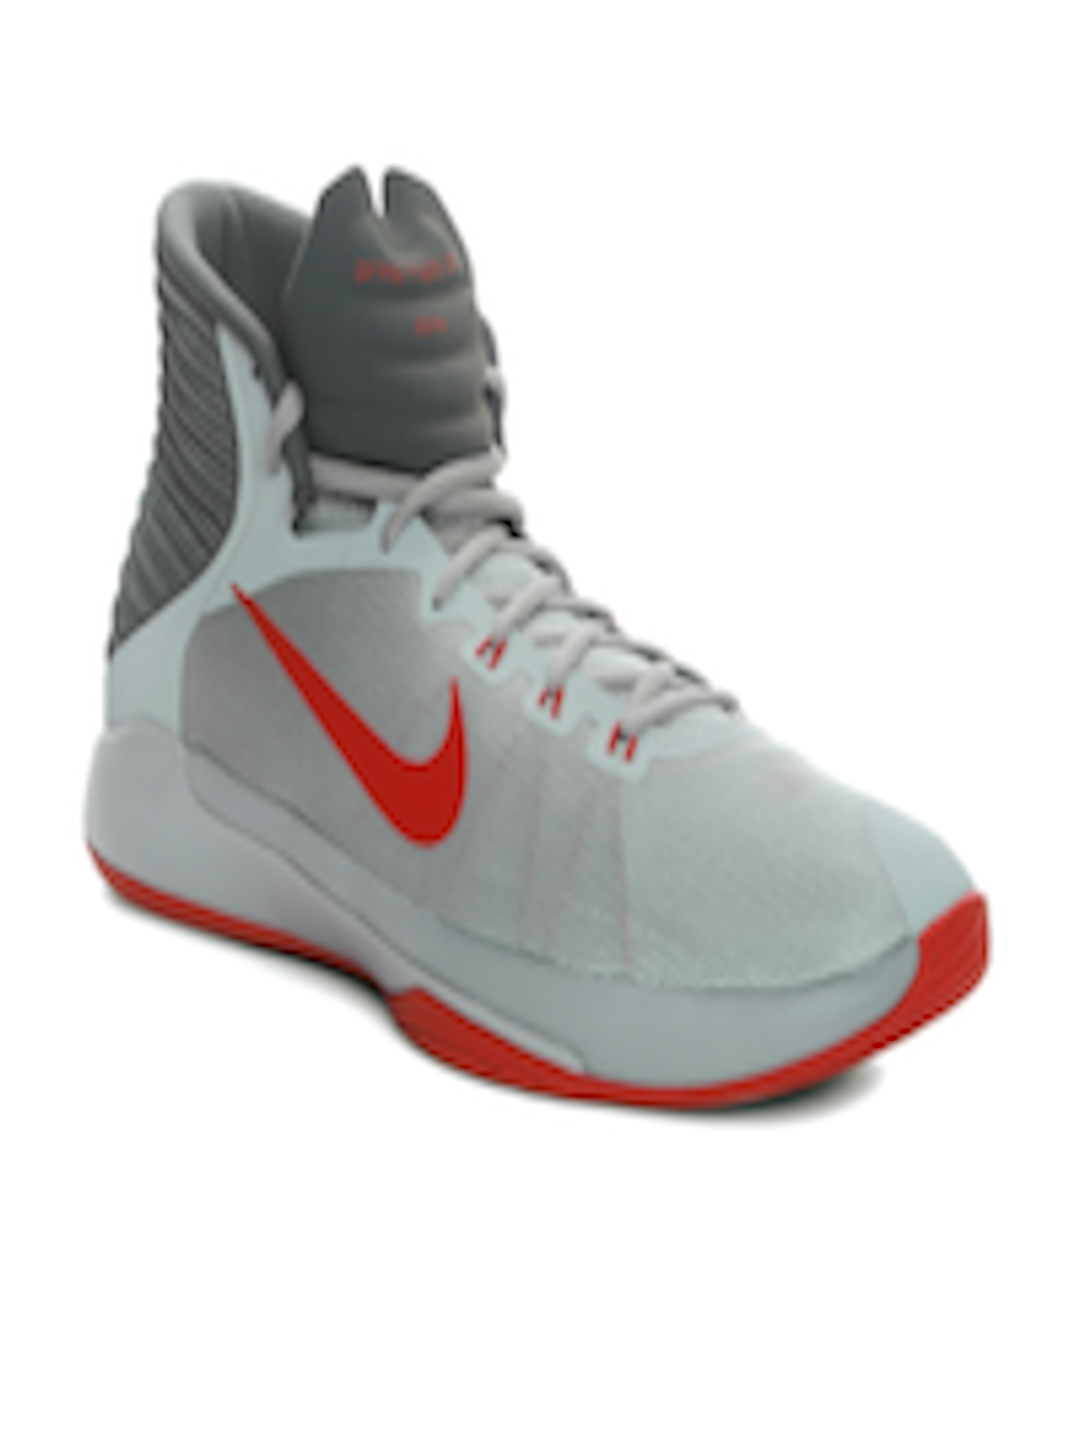 new style 8d3c1 2e1f7 Buy Nike Men Grey Prime Hype DF 2016 Basketball Shoes - - Footwear for Men